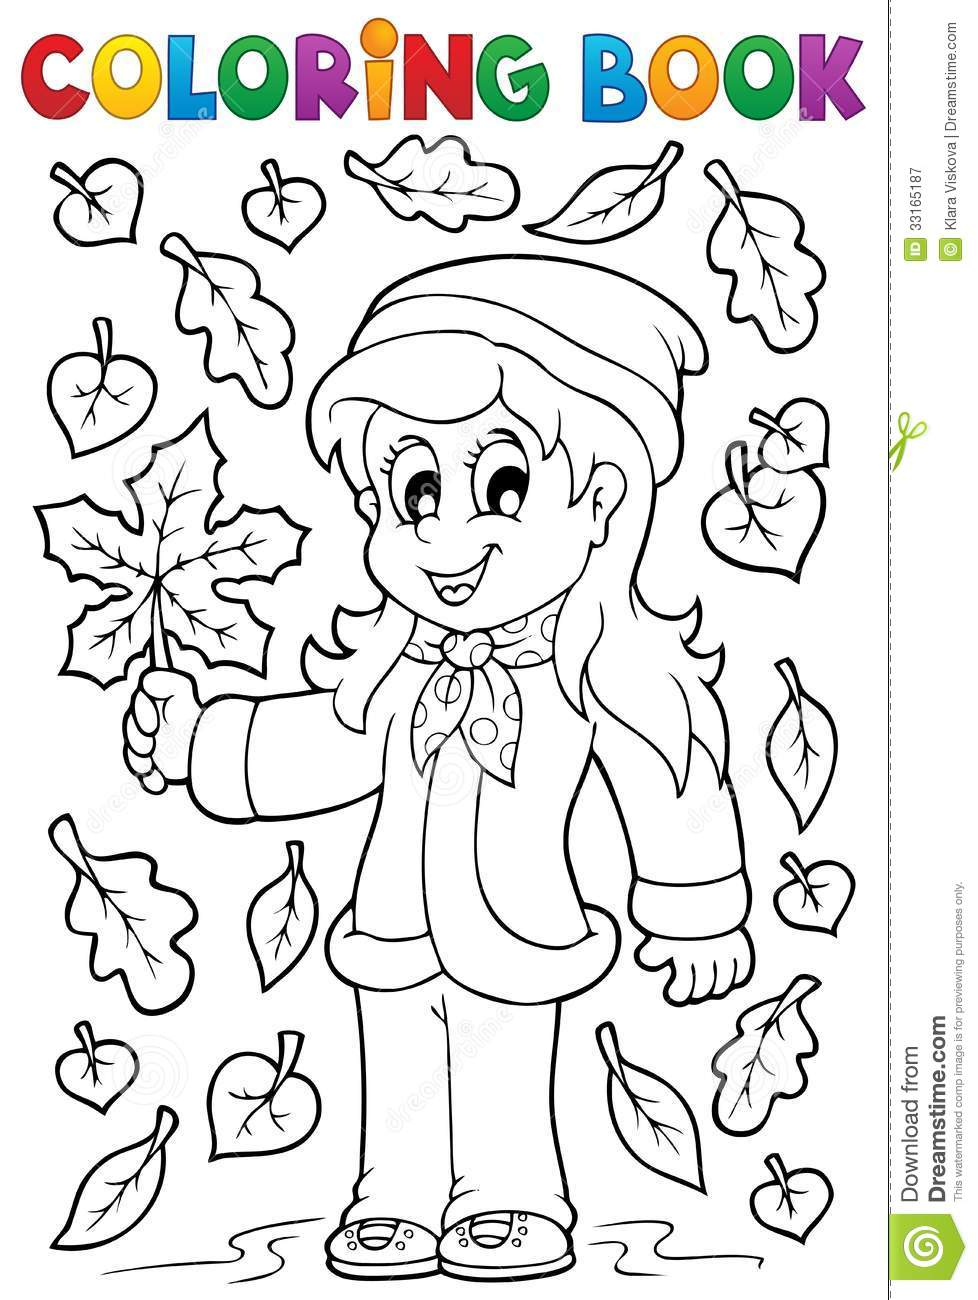 Coloring book with autumn theme 2 royalty free stock for Fall theme coloring pages